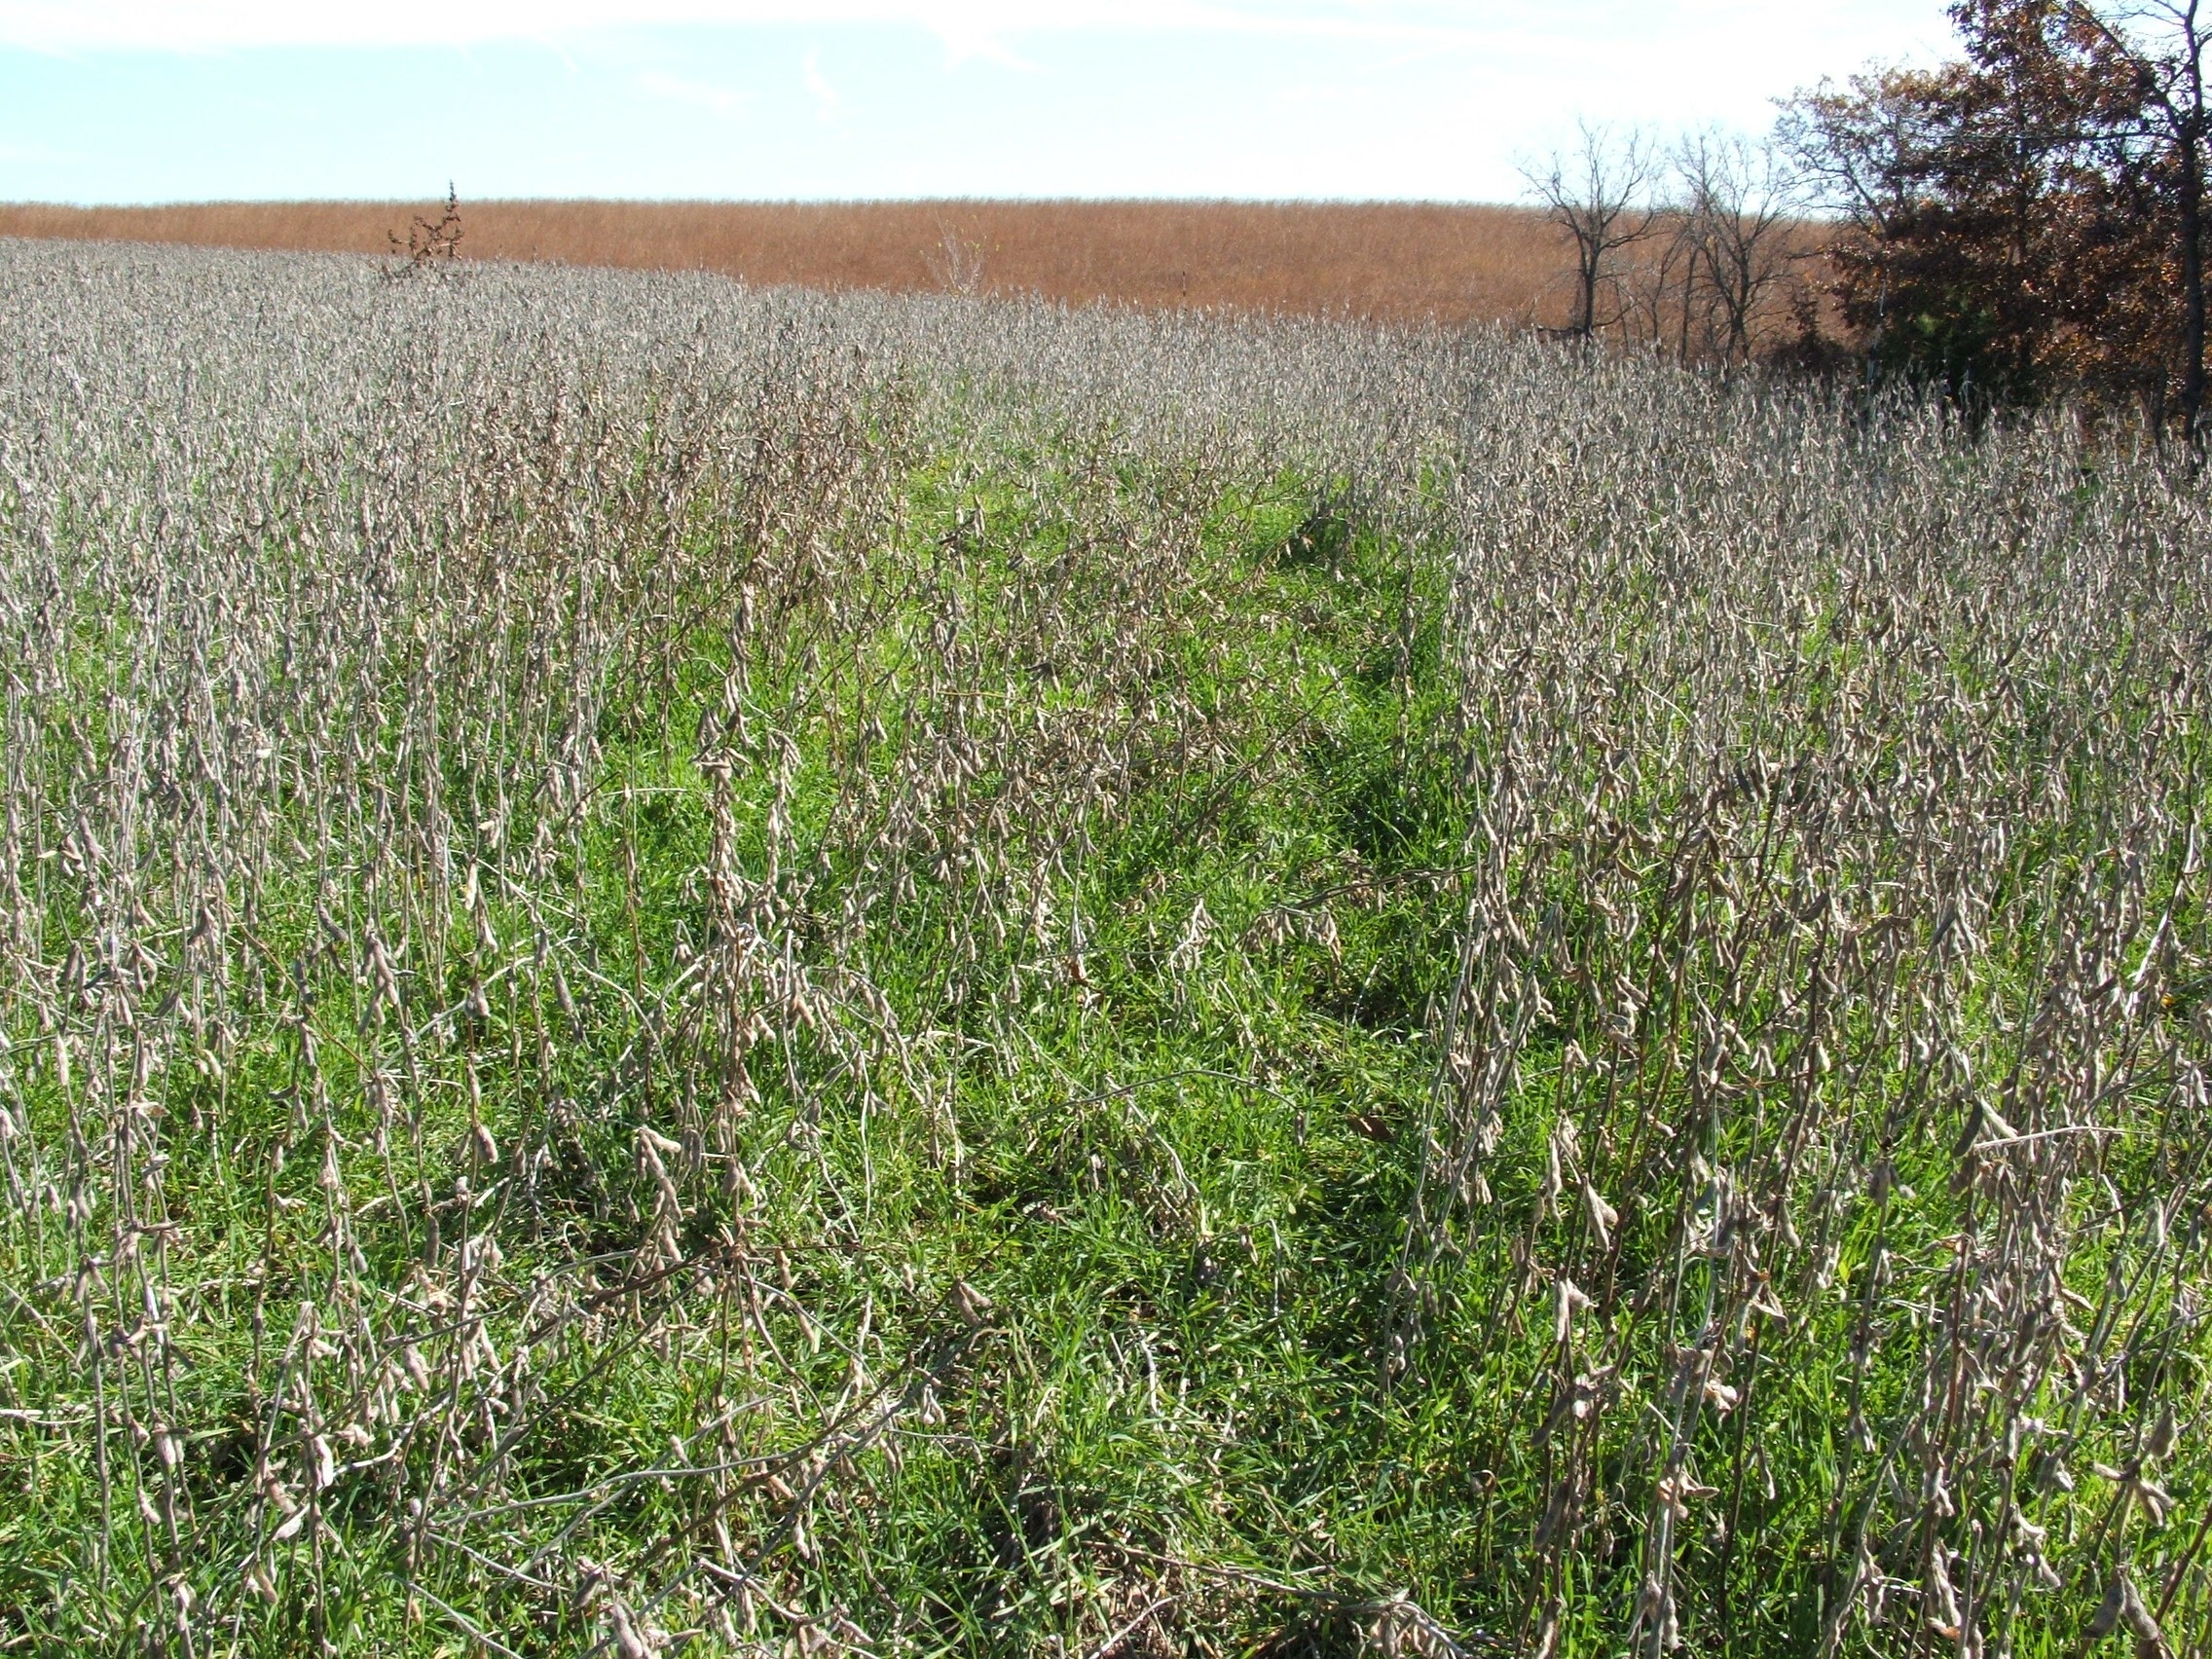 Soybeans over-seeded with winter rye is a great, if not the best food plot.  When the beans are consumed what remains is a solid plot (winter rye) that will stay green all through winter and into next spring.